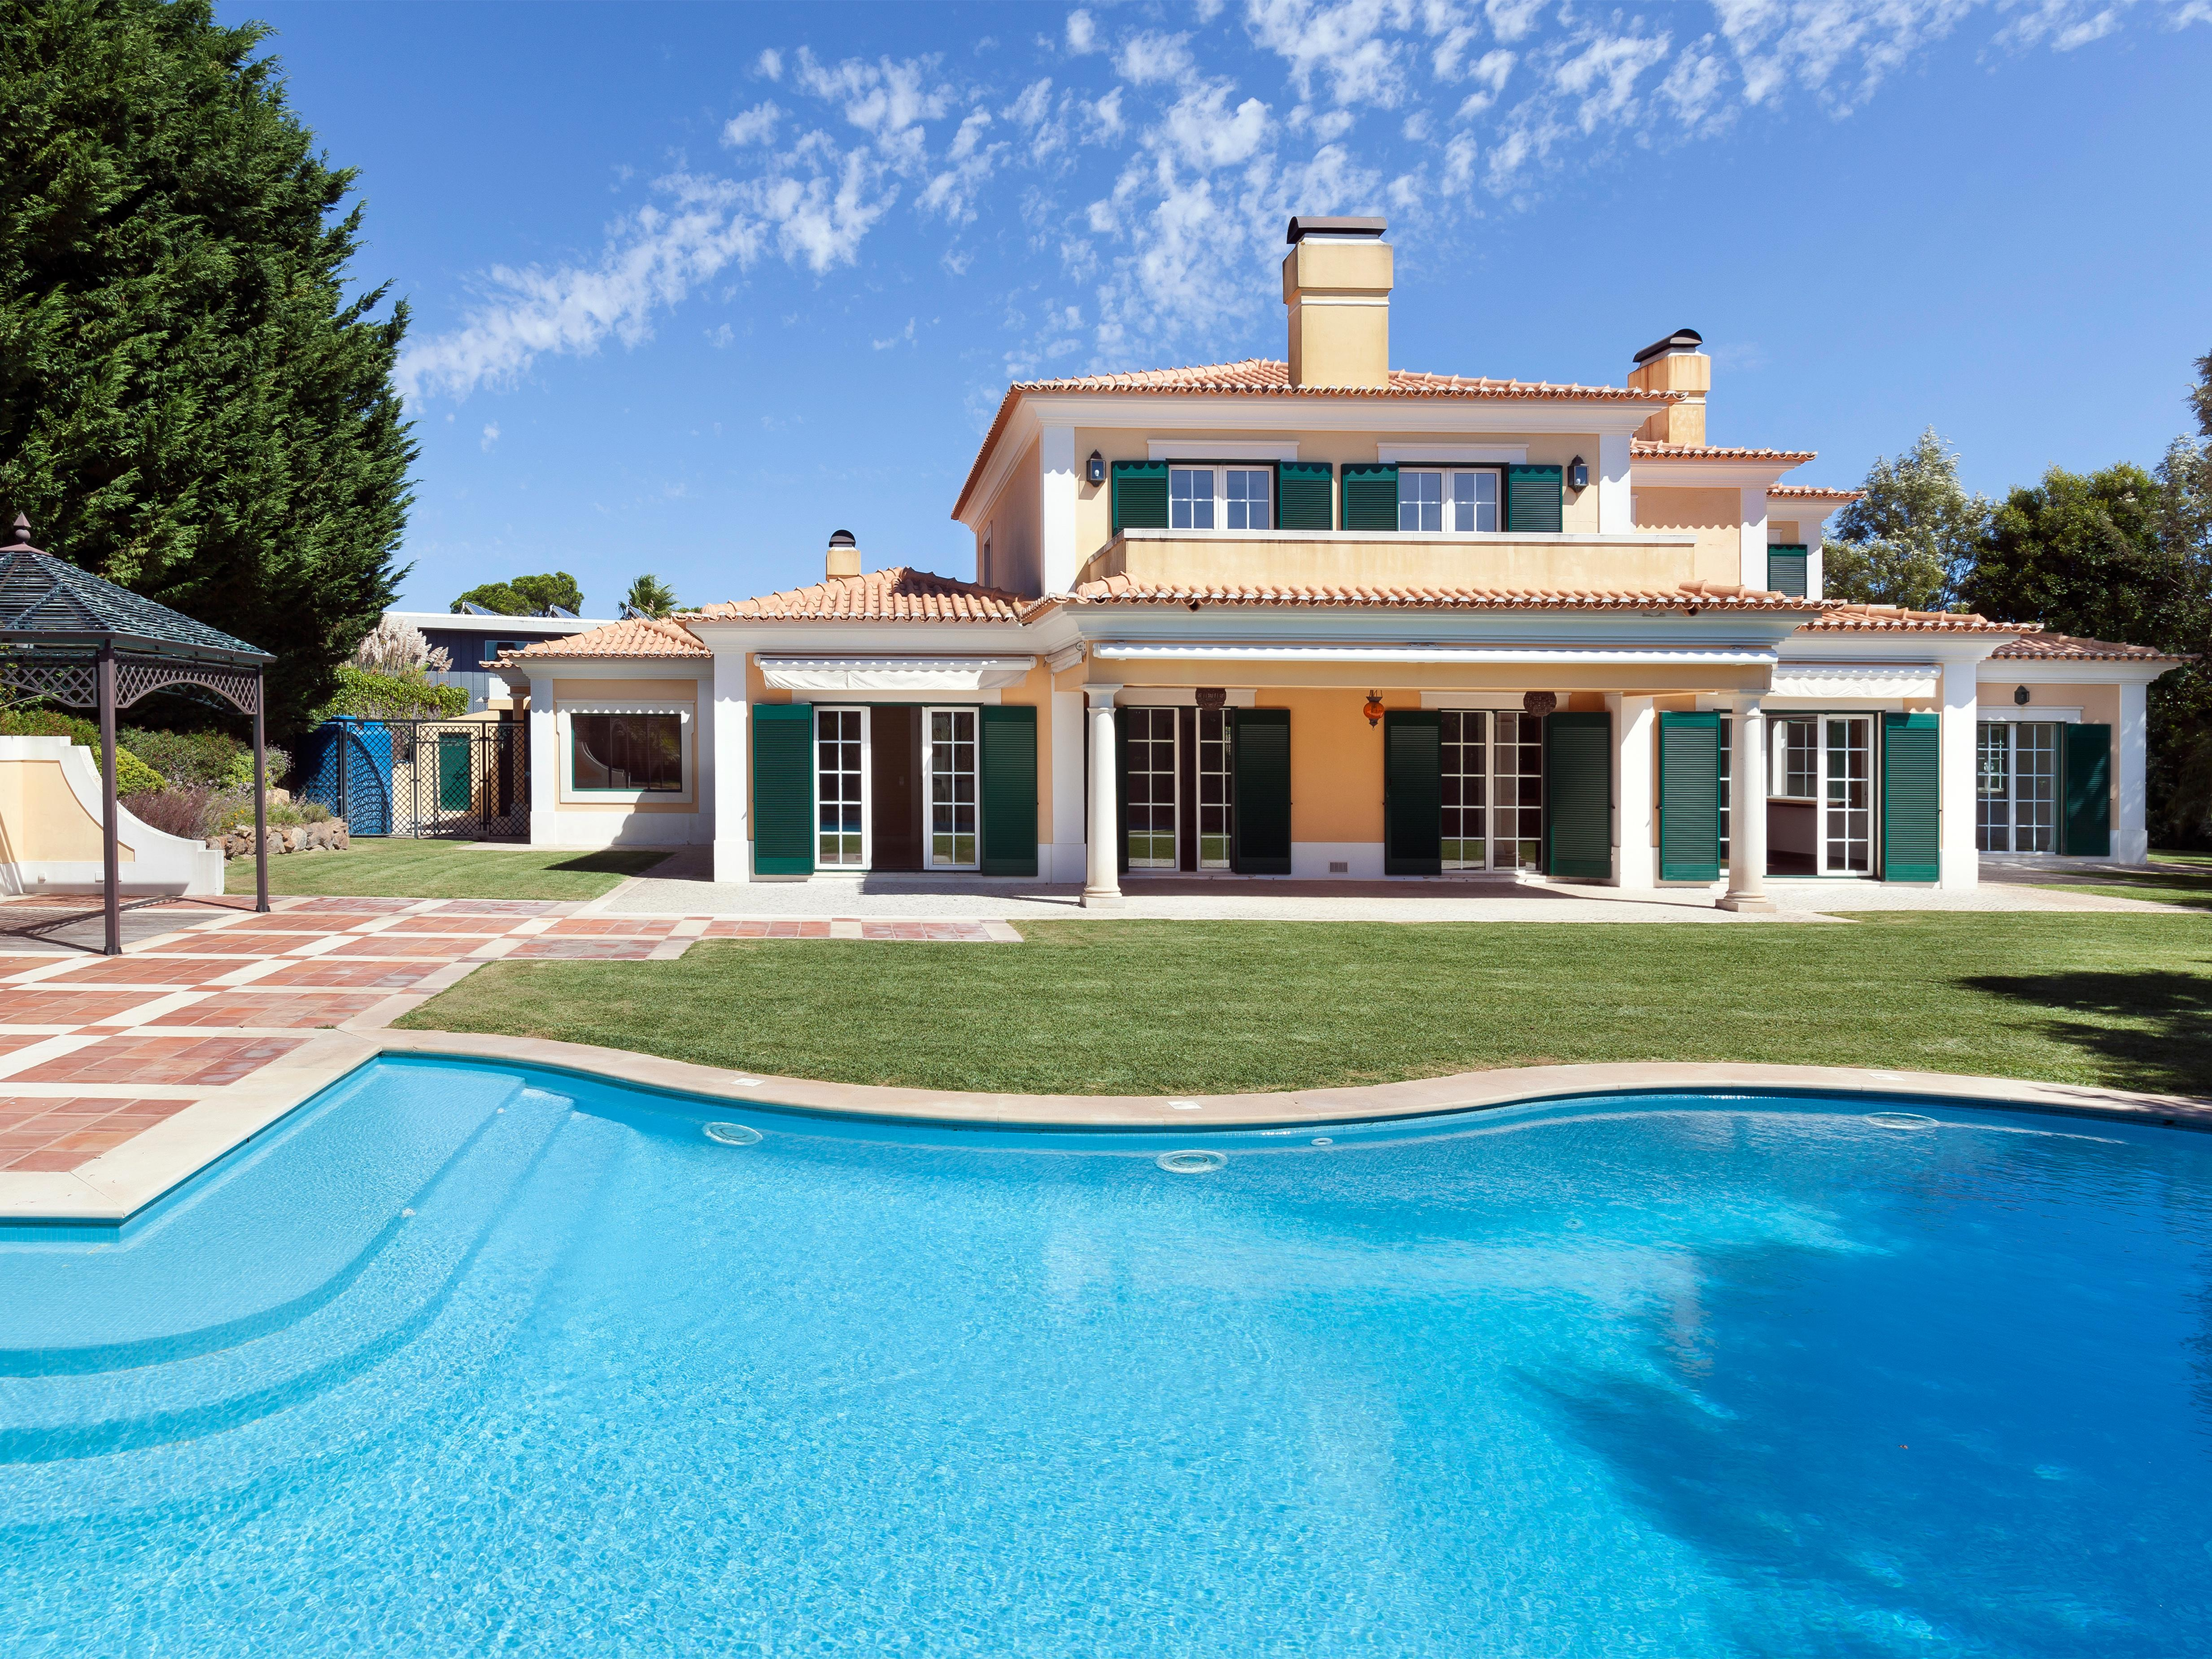 Single Family Home for Sale at Detached house, 5 bedrooms, for Sale Cascais, Lisboa, Portugal